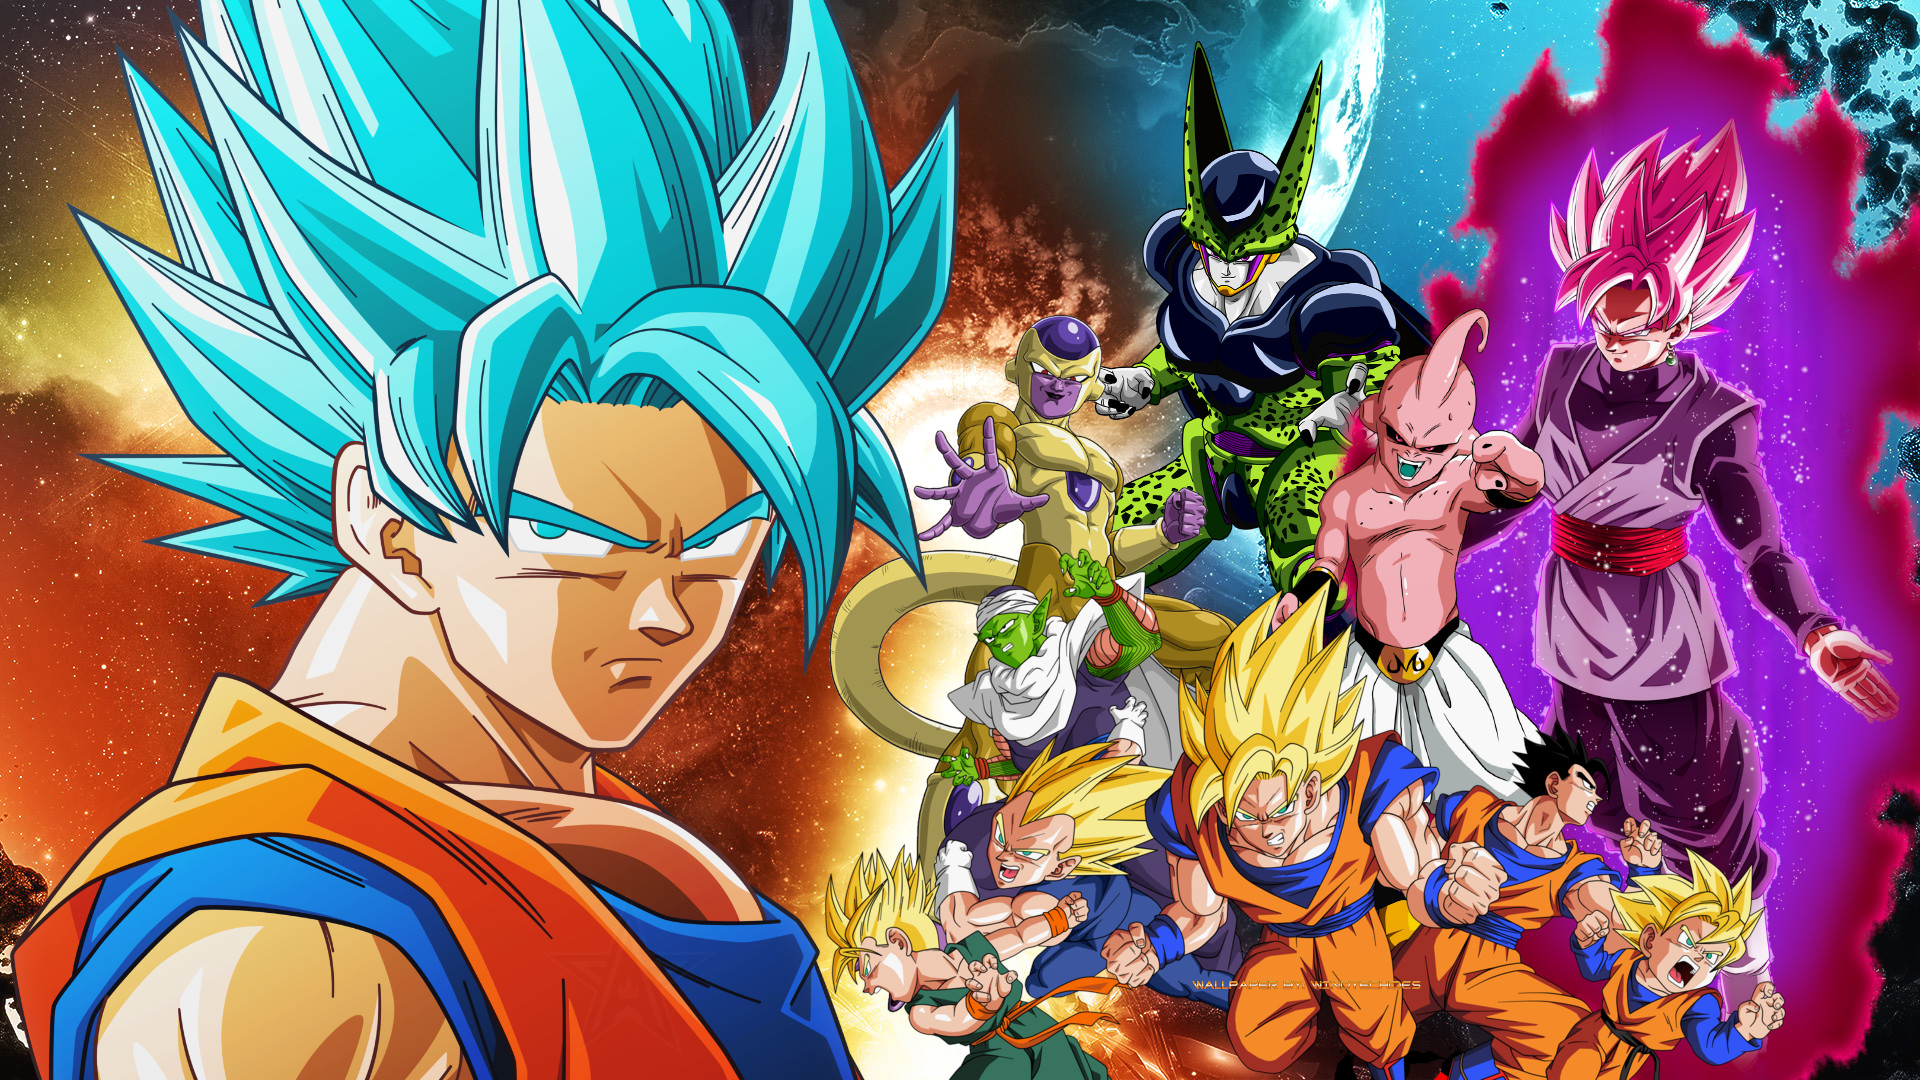 Dragon Ball Super Wallpaper 58 Images